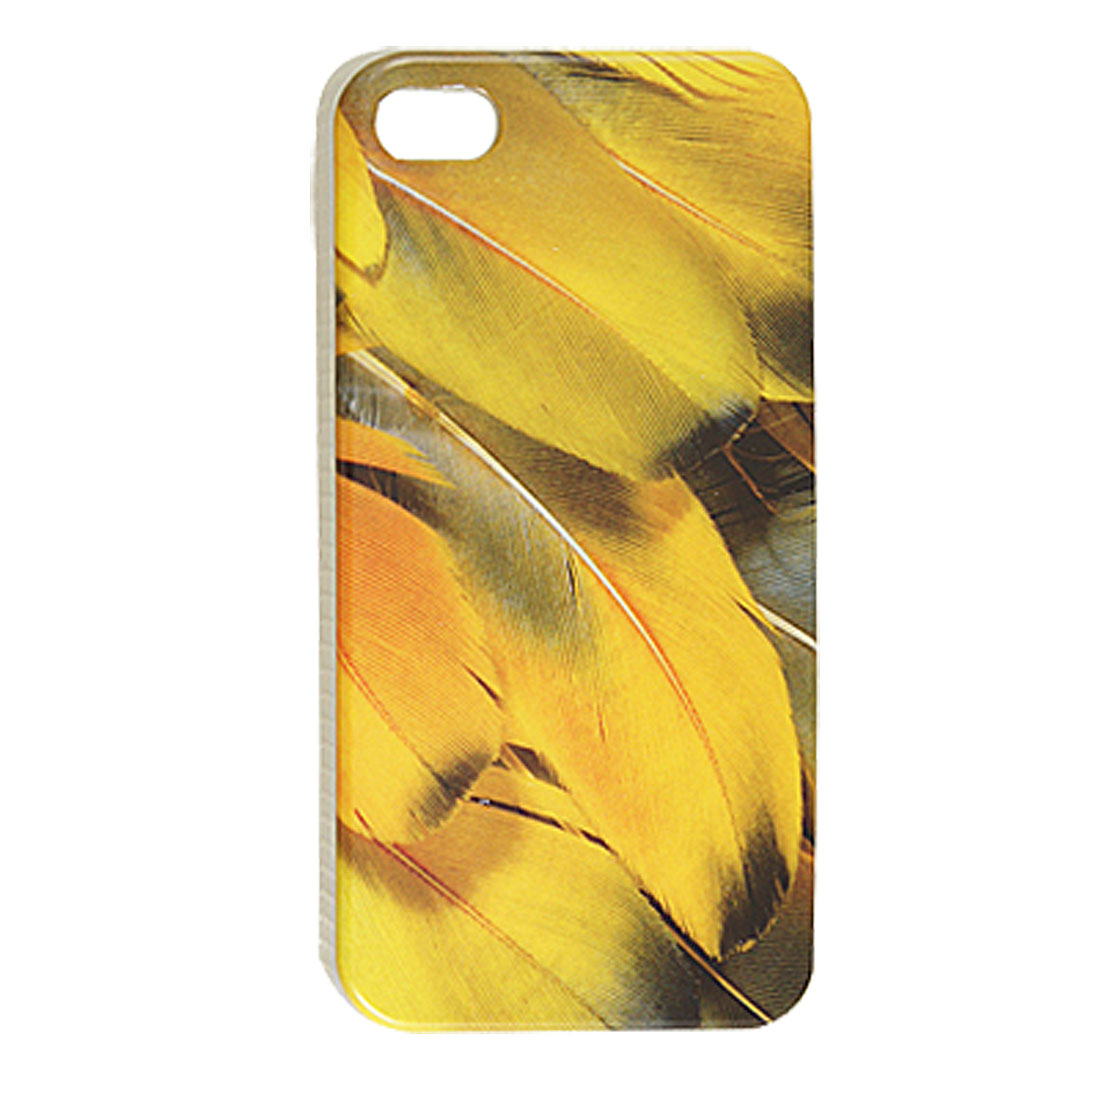 Yellow Feathers Patterns Hard Plastic Back Shell for iPhone 4 4G 4S